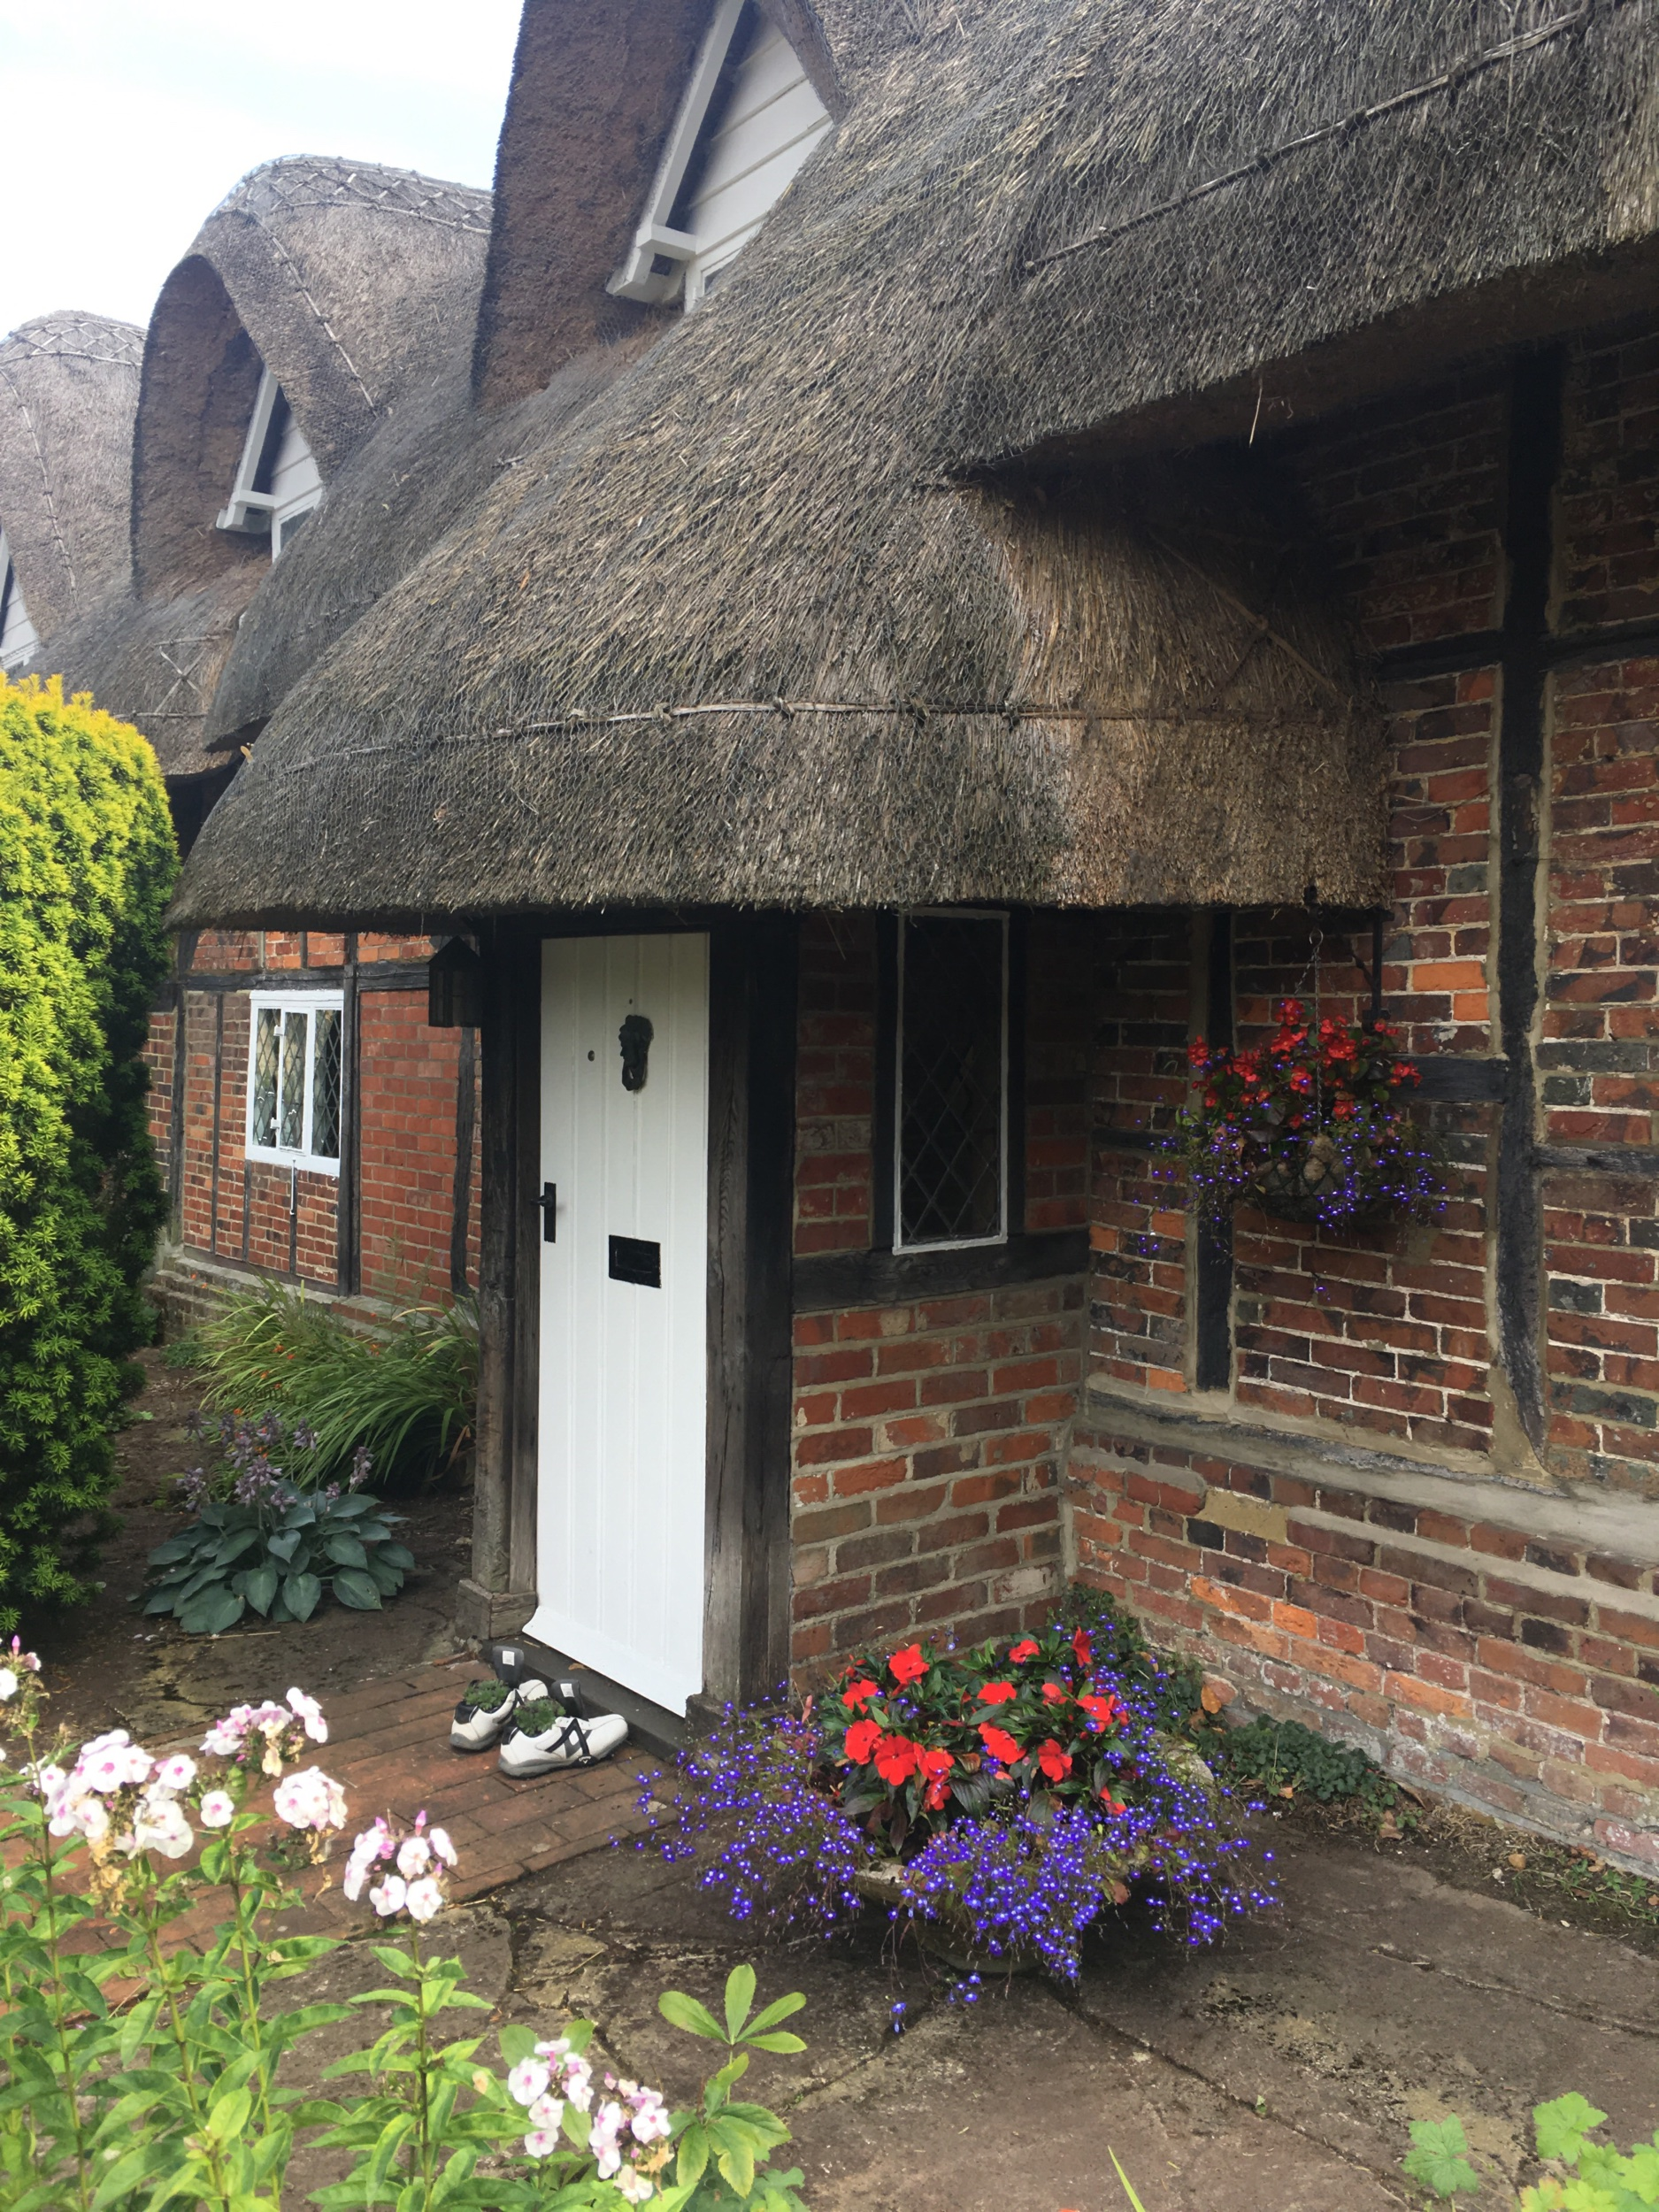 A thatched roof cottage in Chawton, Hampshire